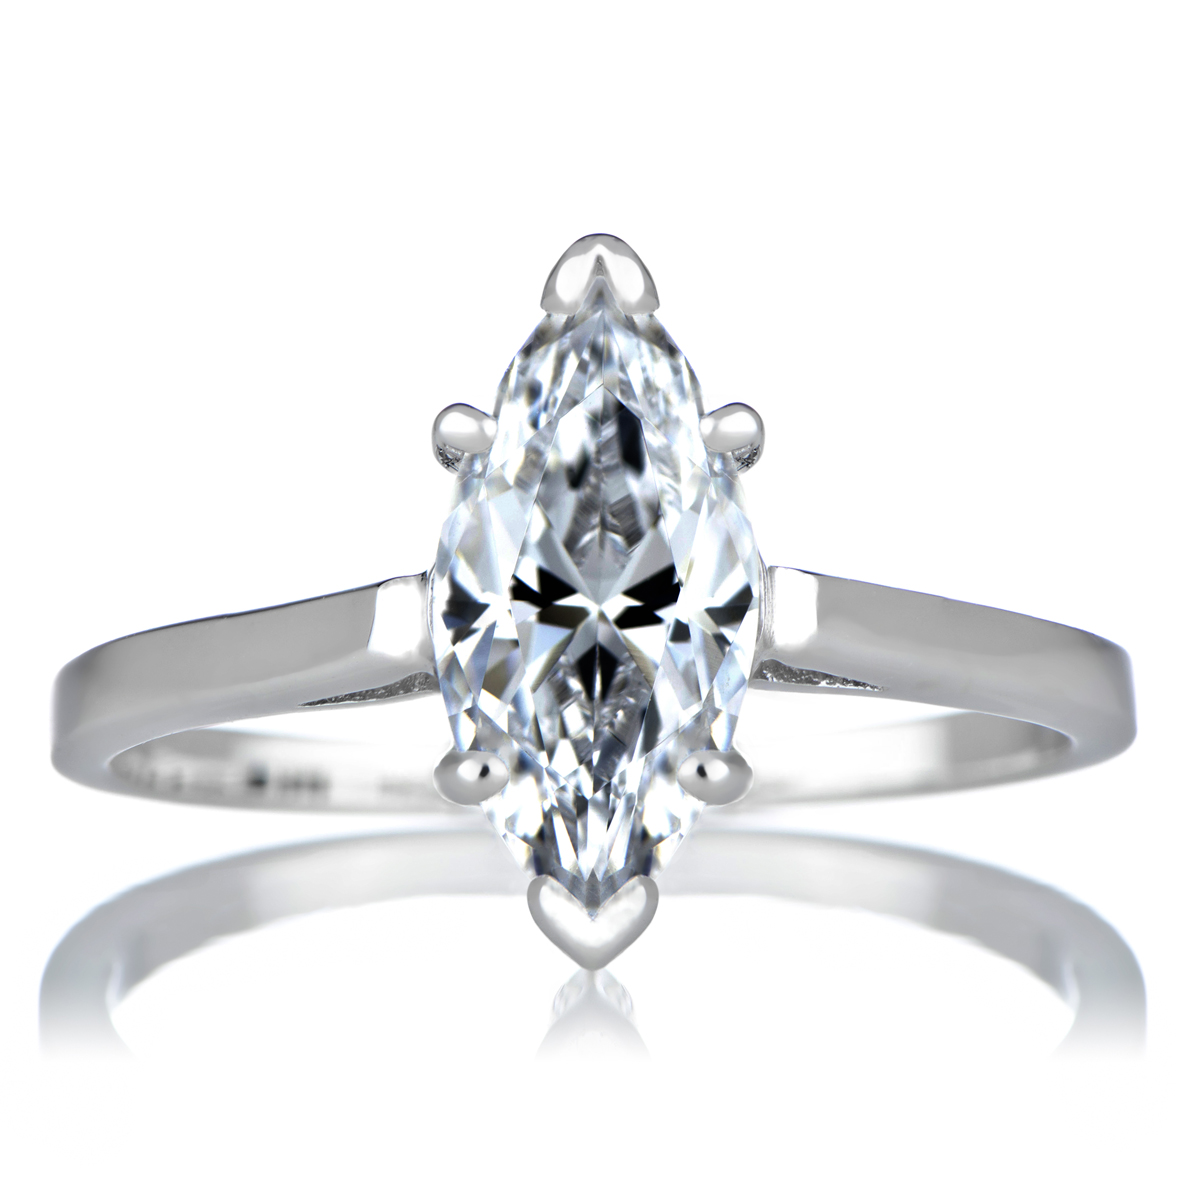 marquee wedding rings marquee wedding ring brave marquee wedding rings 13 like affordable design